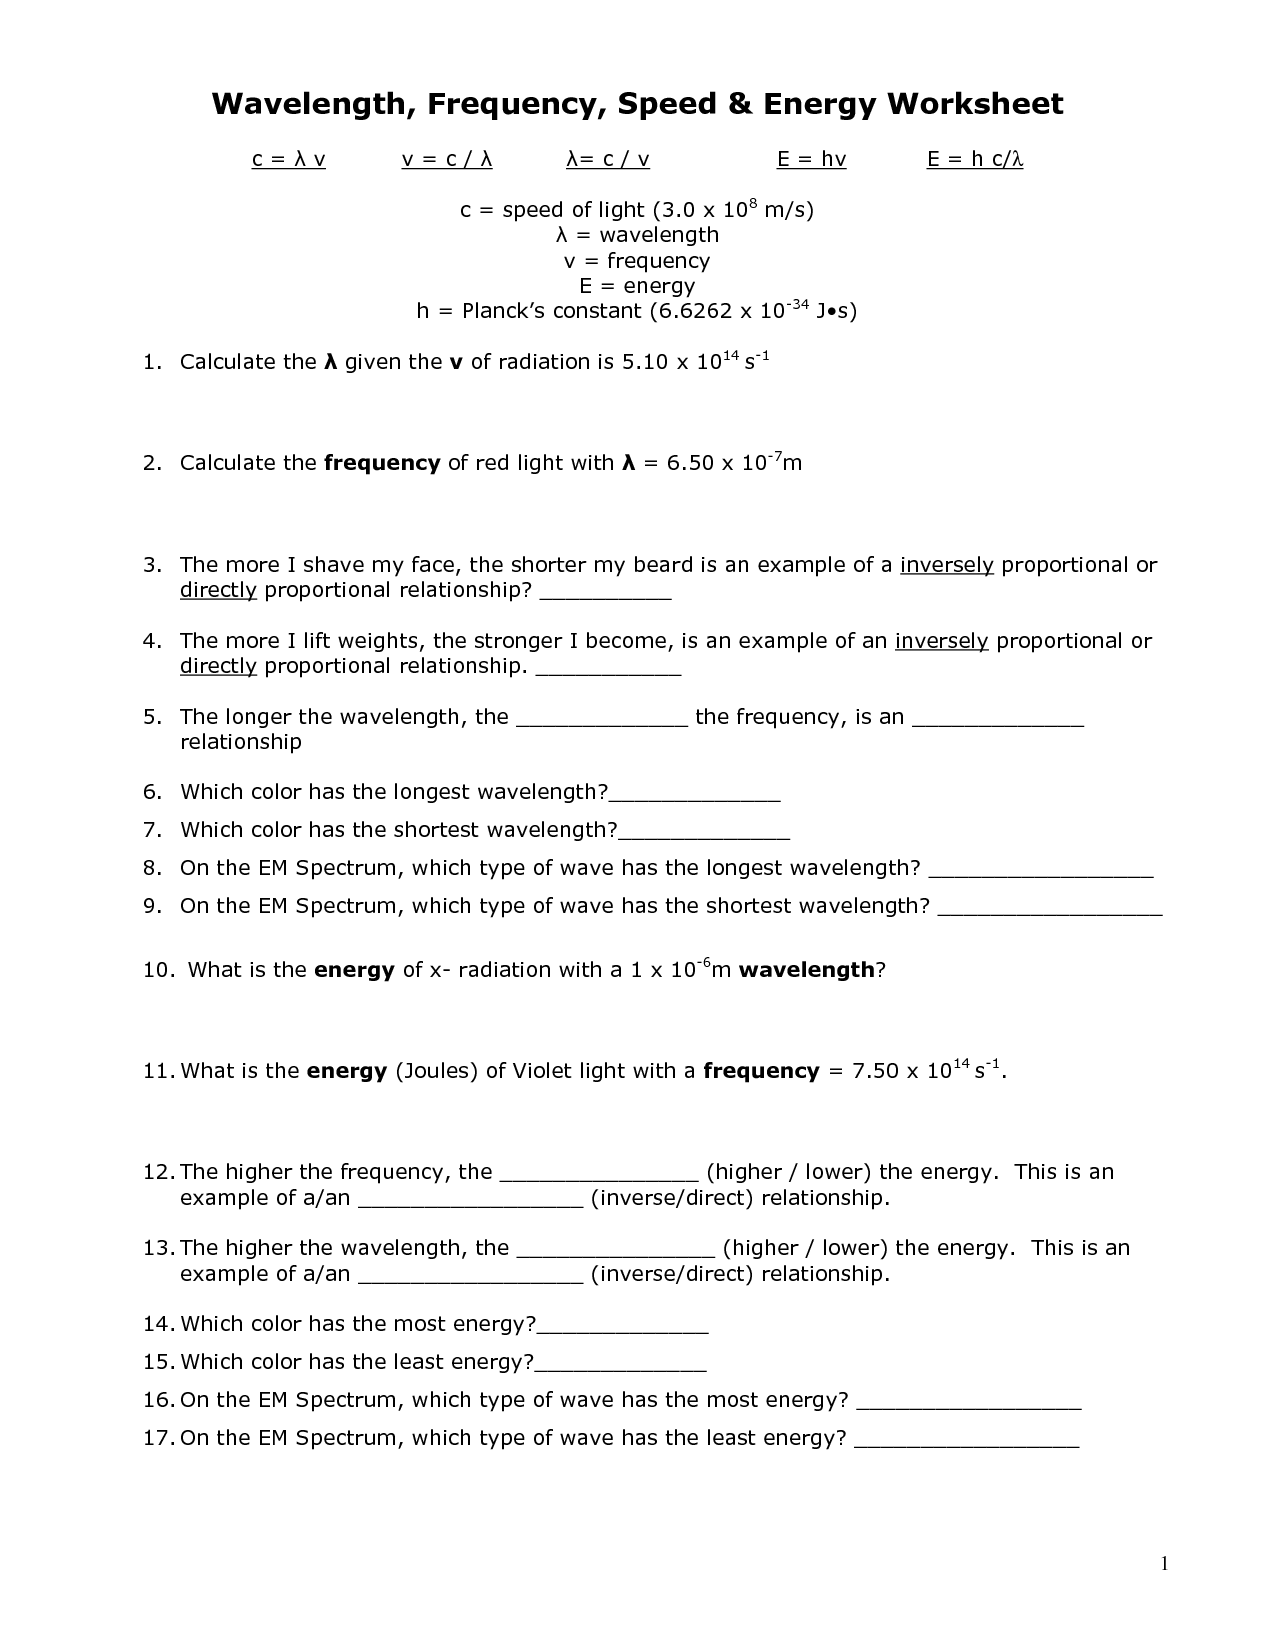 Frequency Table Worksheet Middle School